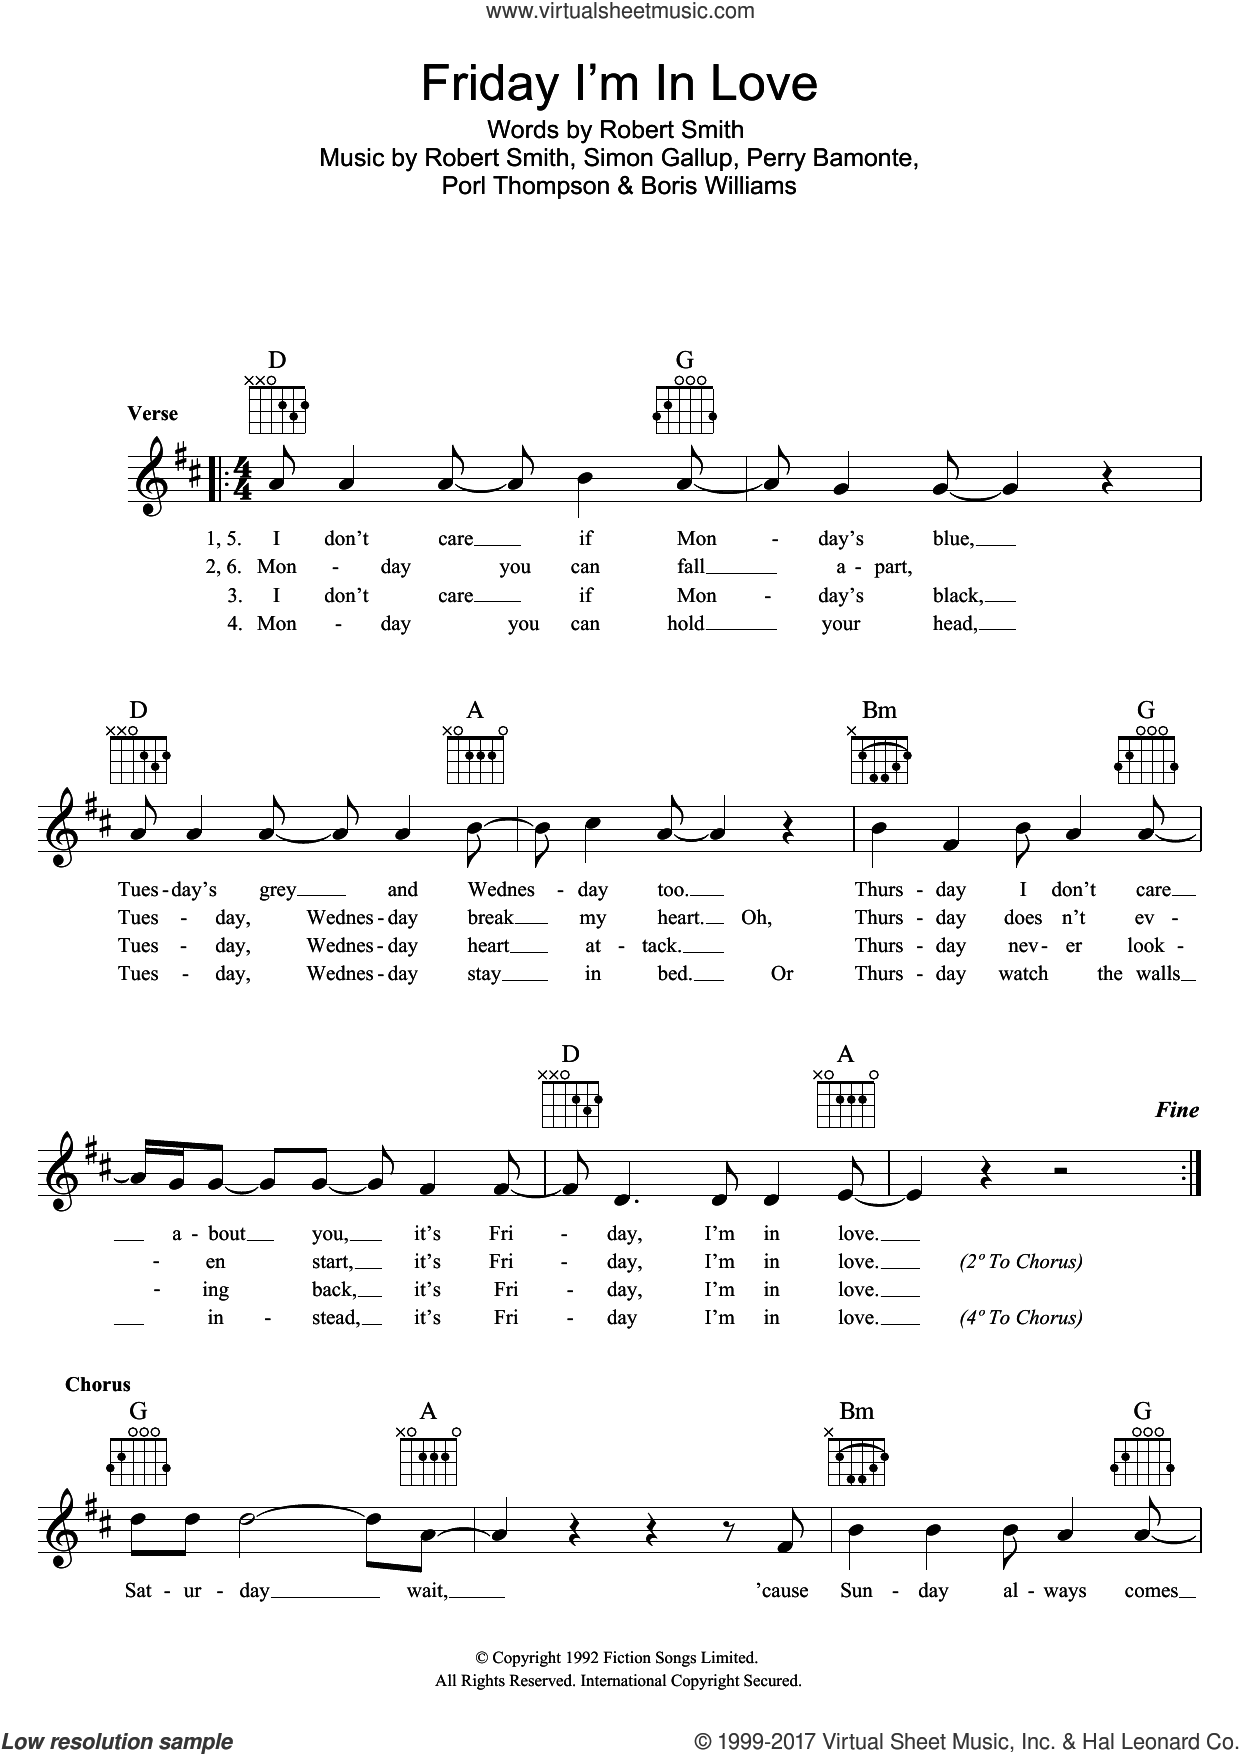 Friday I'm In Love sheet music for voice and other instruments (fake book) by The Cure, Boris Williams, Perry Bamonte, Porl Thompson, Robert Smith and Simon Gallup, intermediate skill level